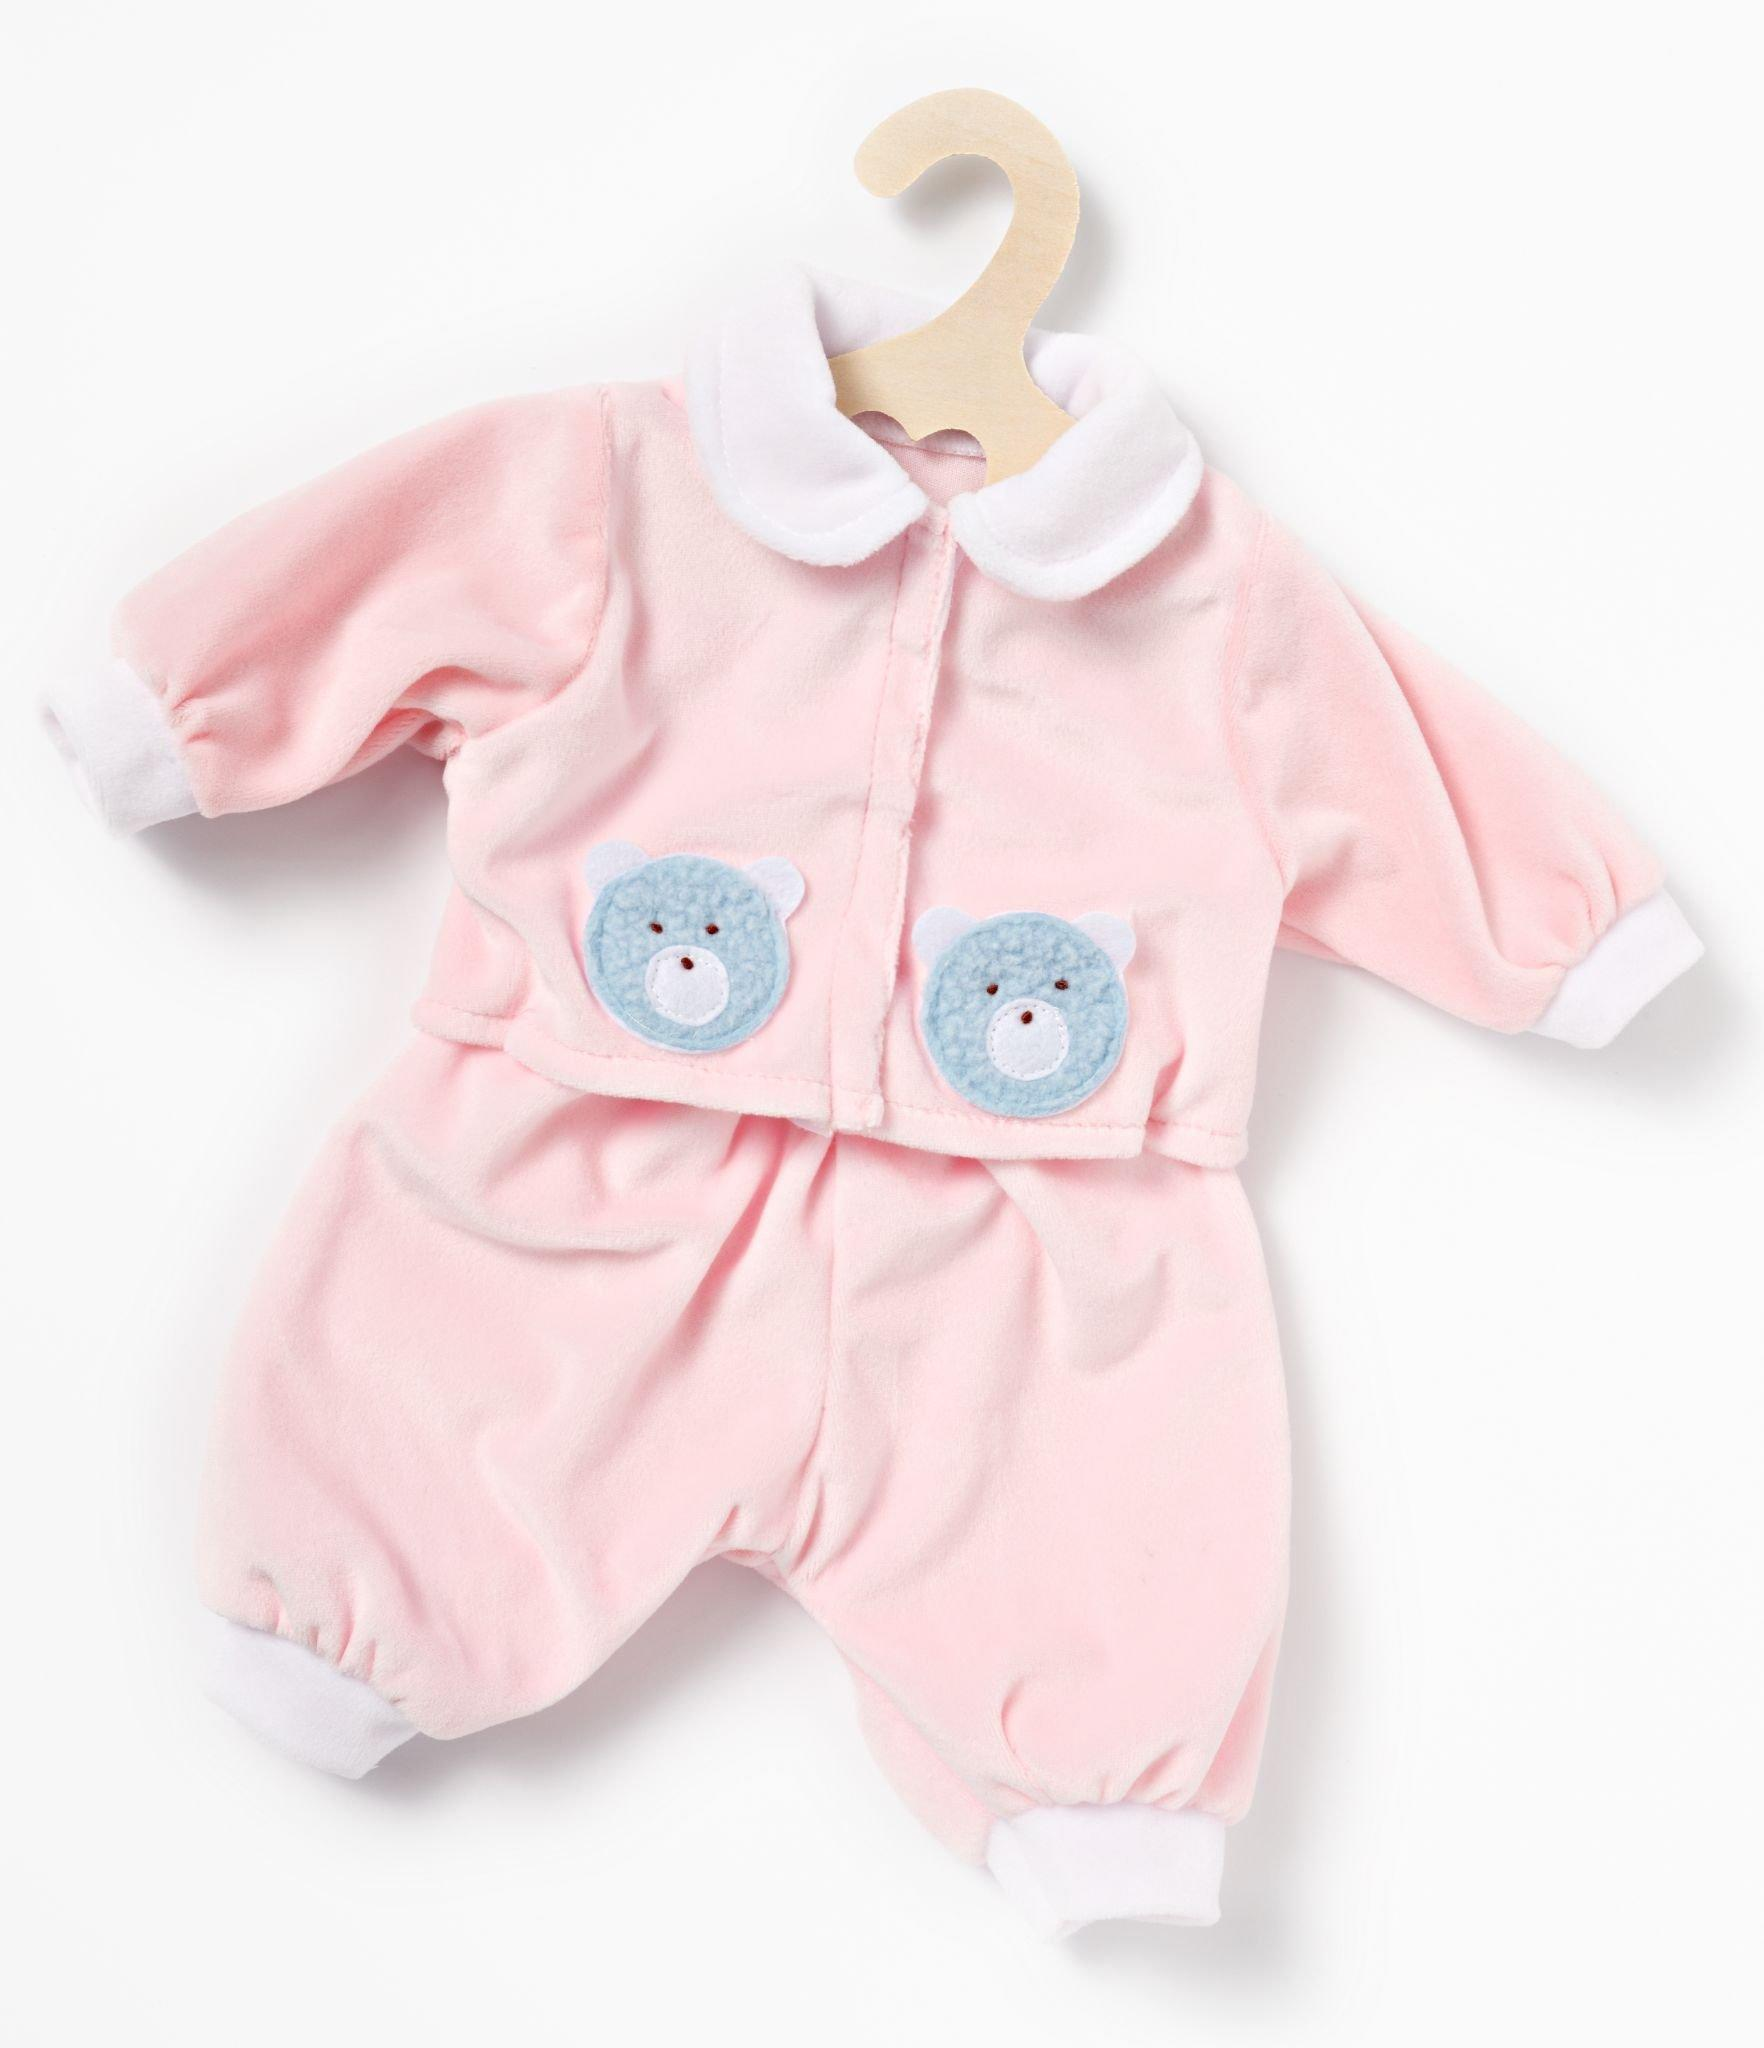 Dolls pink romper suit